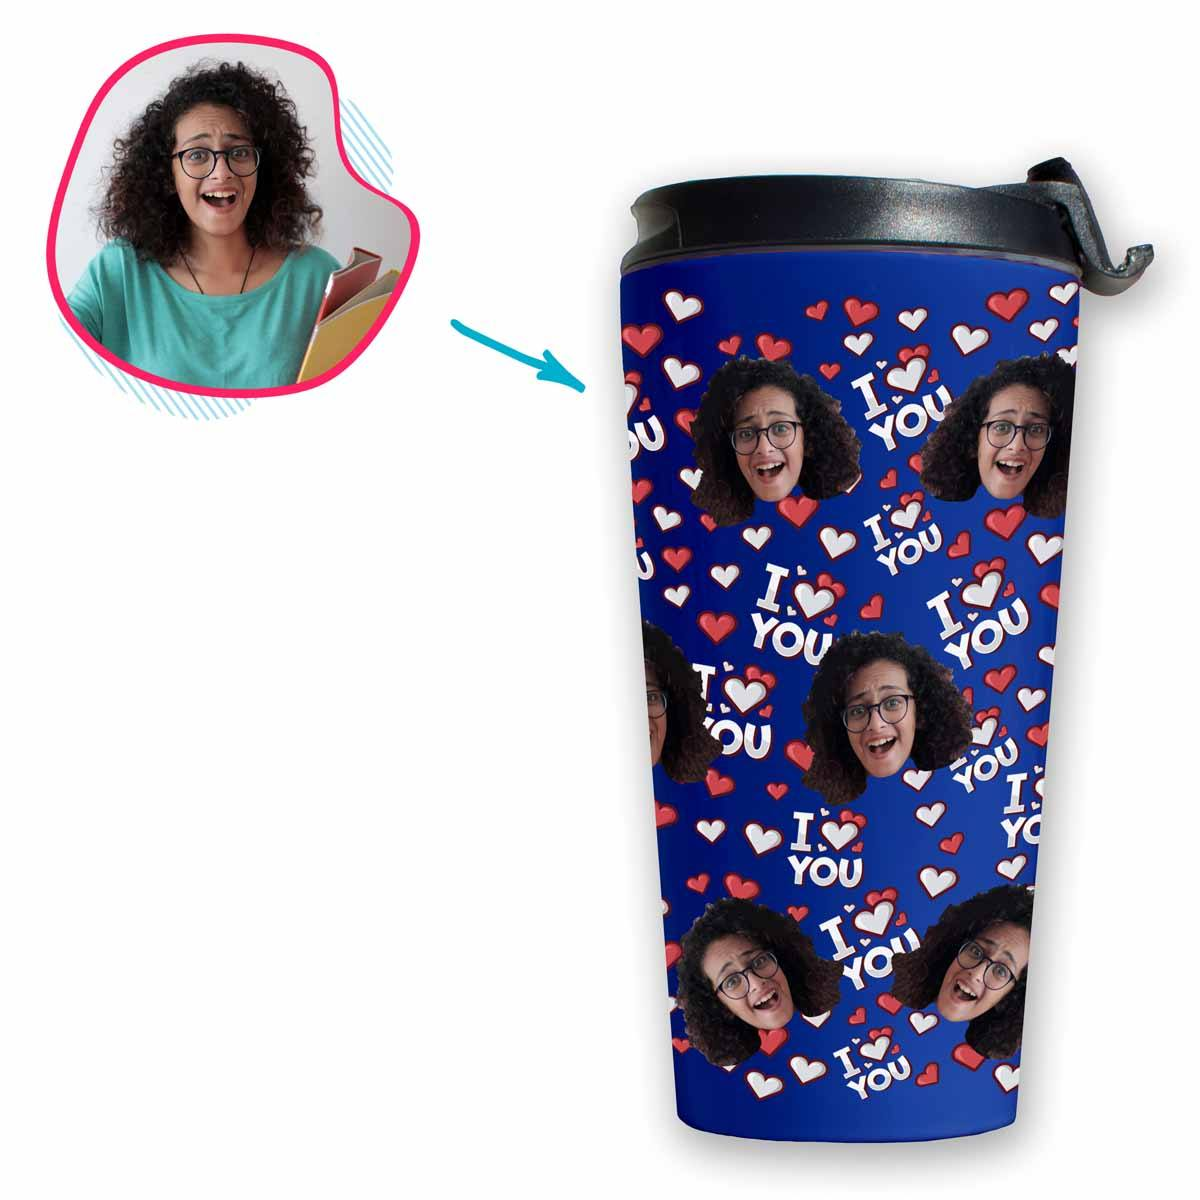 darkblue I Love You travel mug personalized with photo of face printed on it